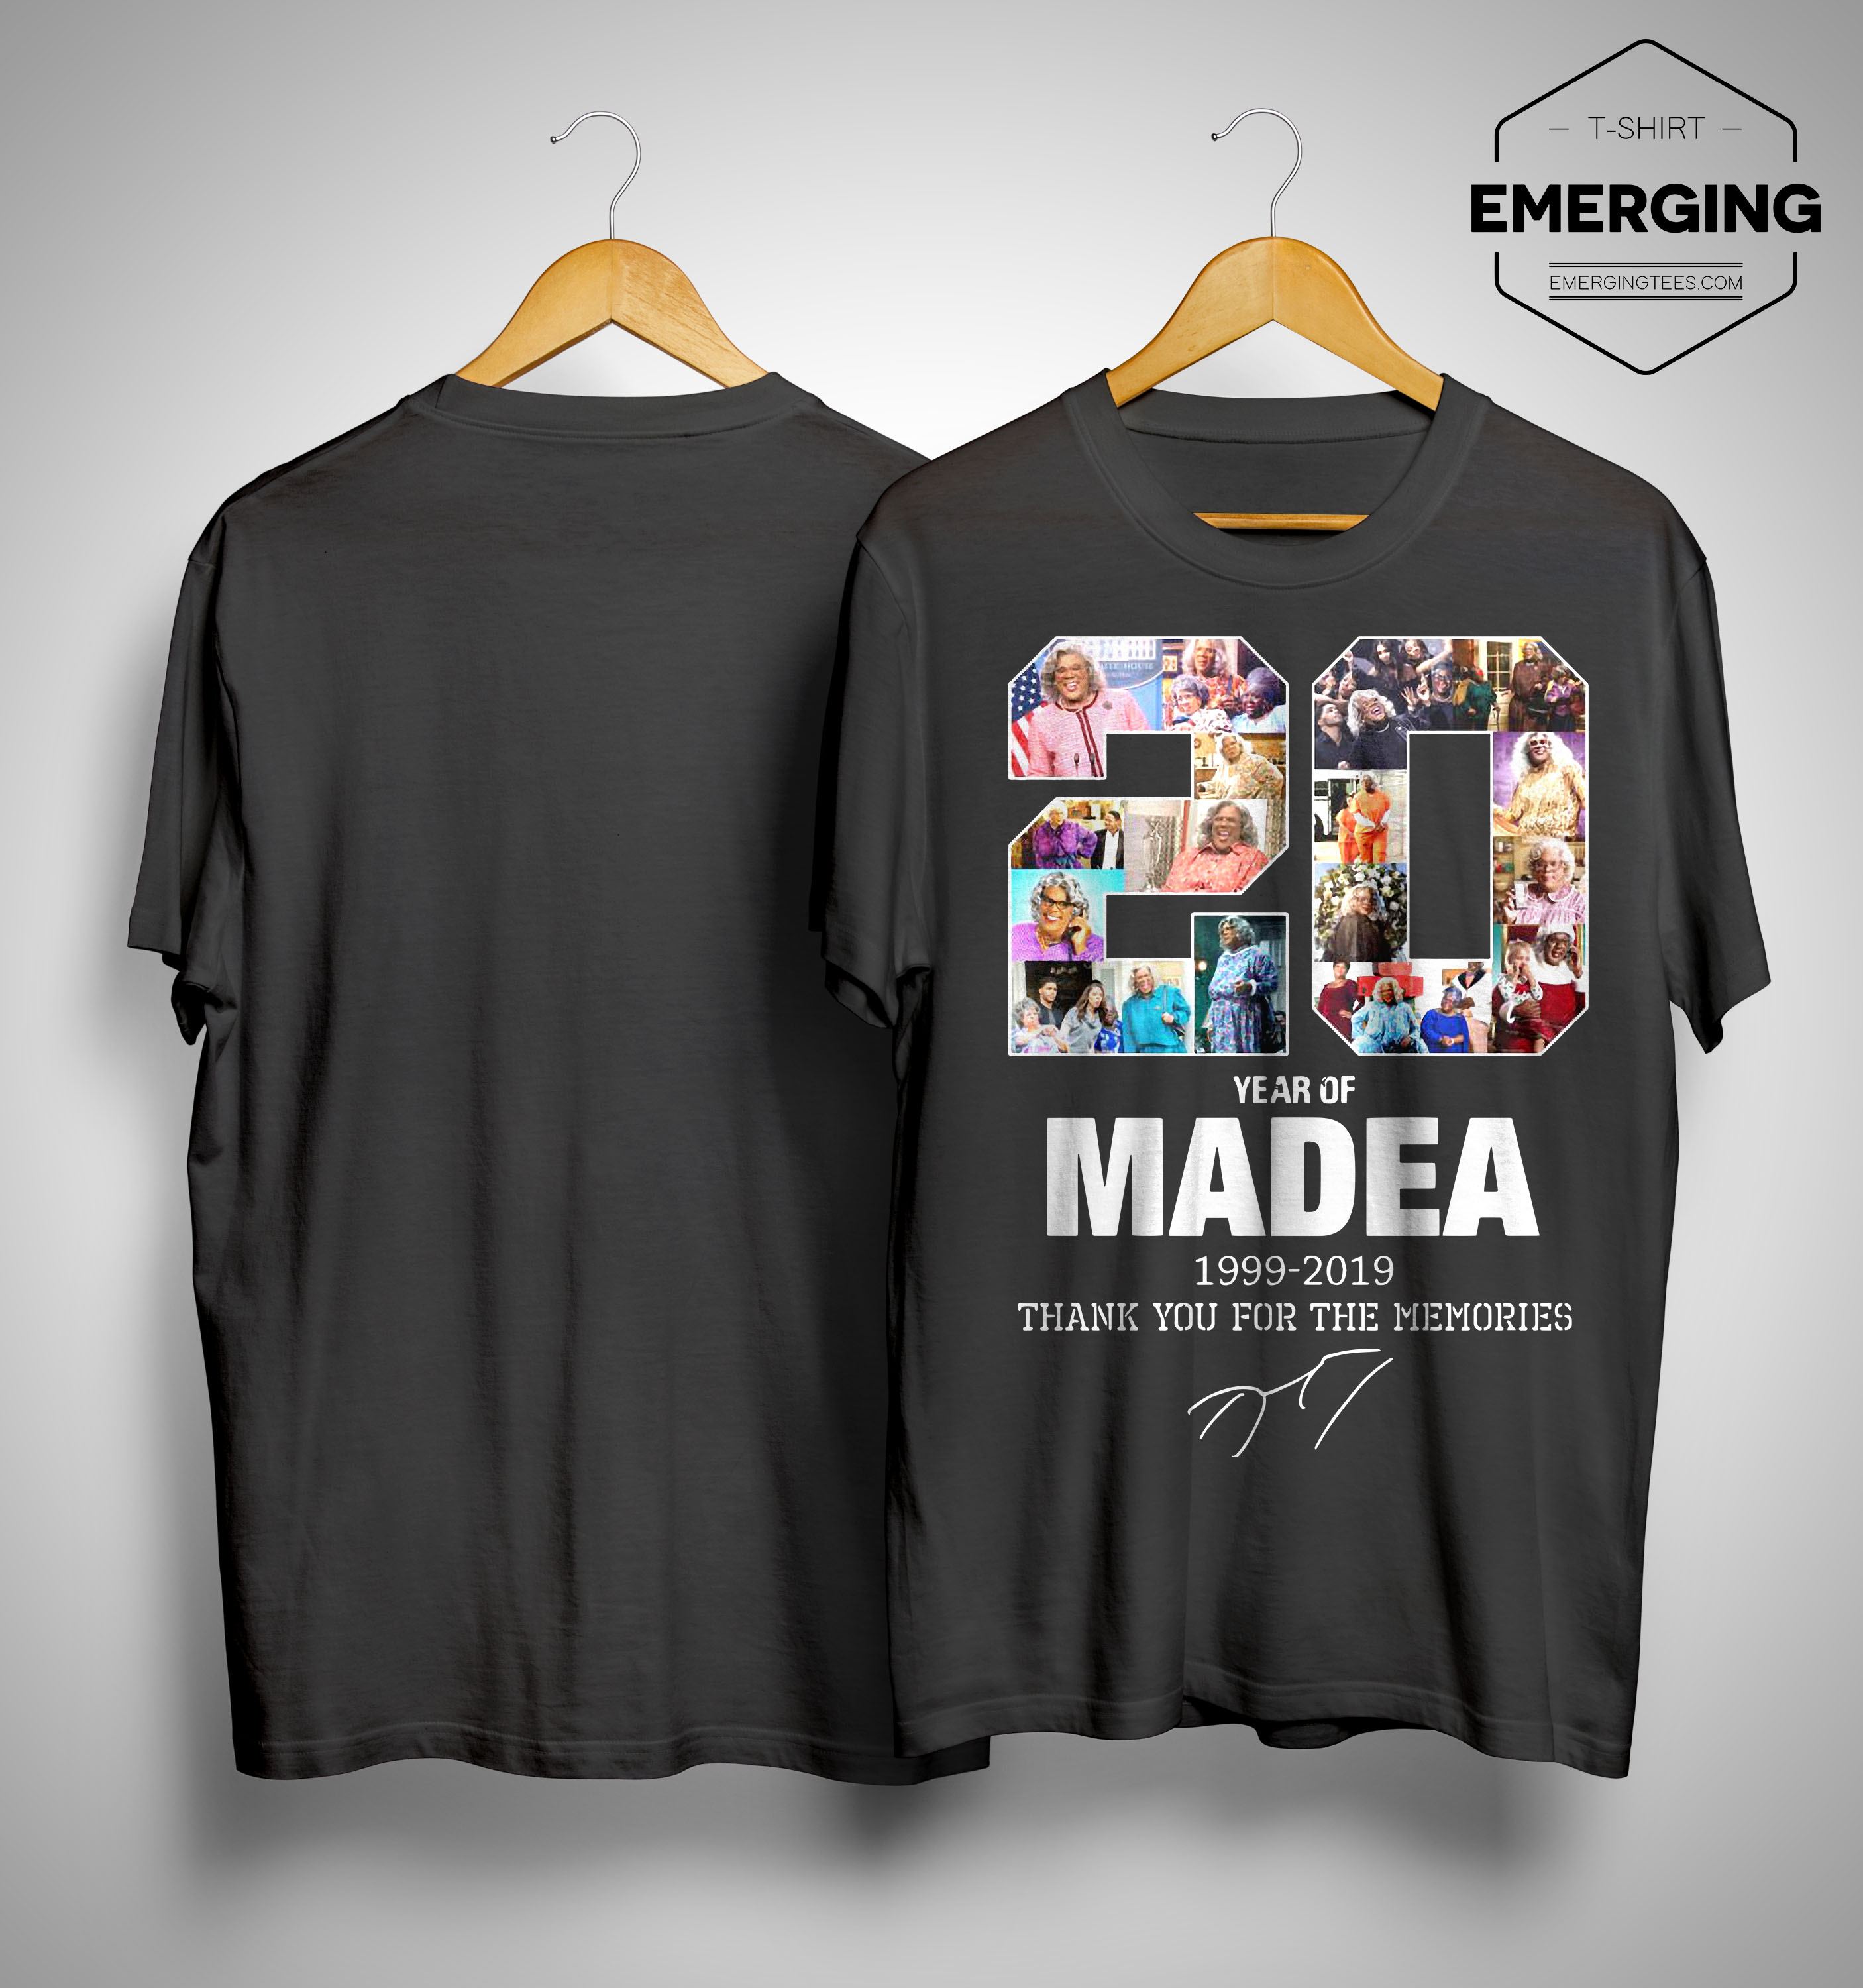 20 Years Of Madea 1999 2019 Thank You For Memories Shirt